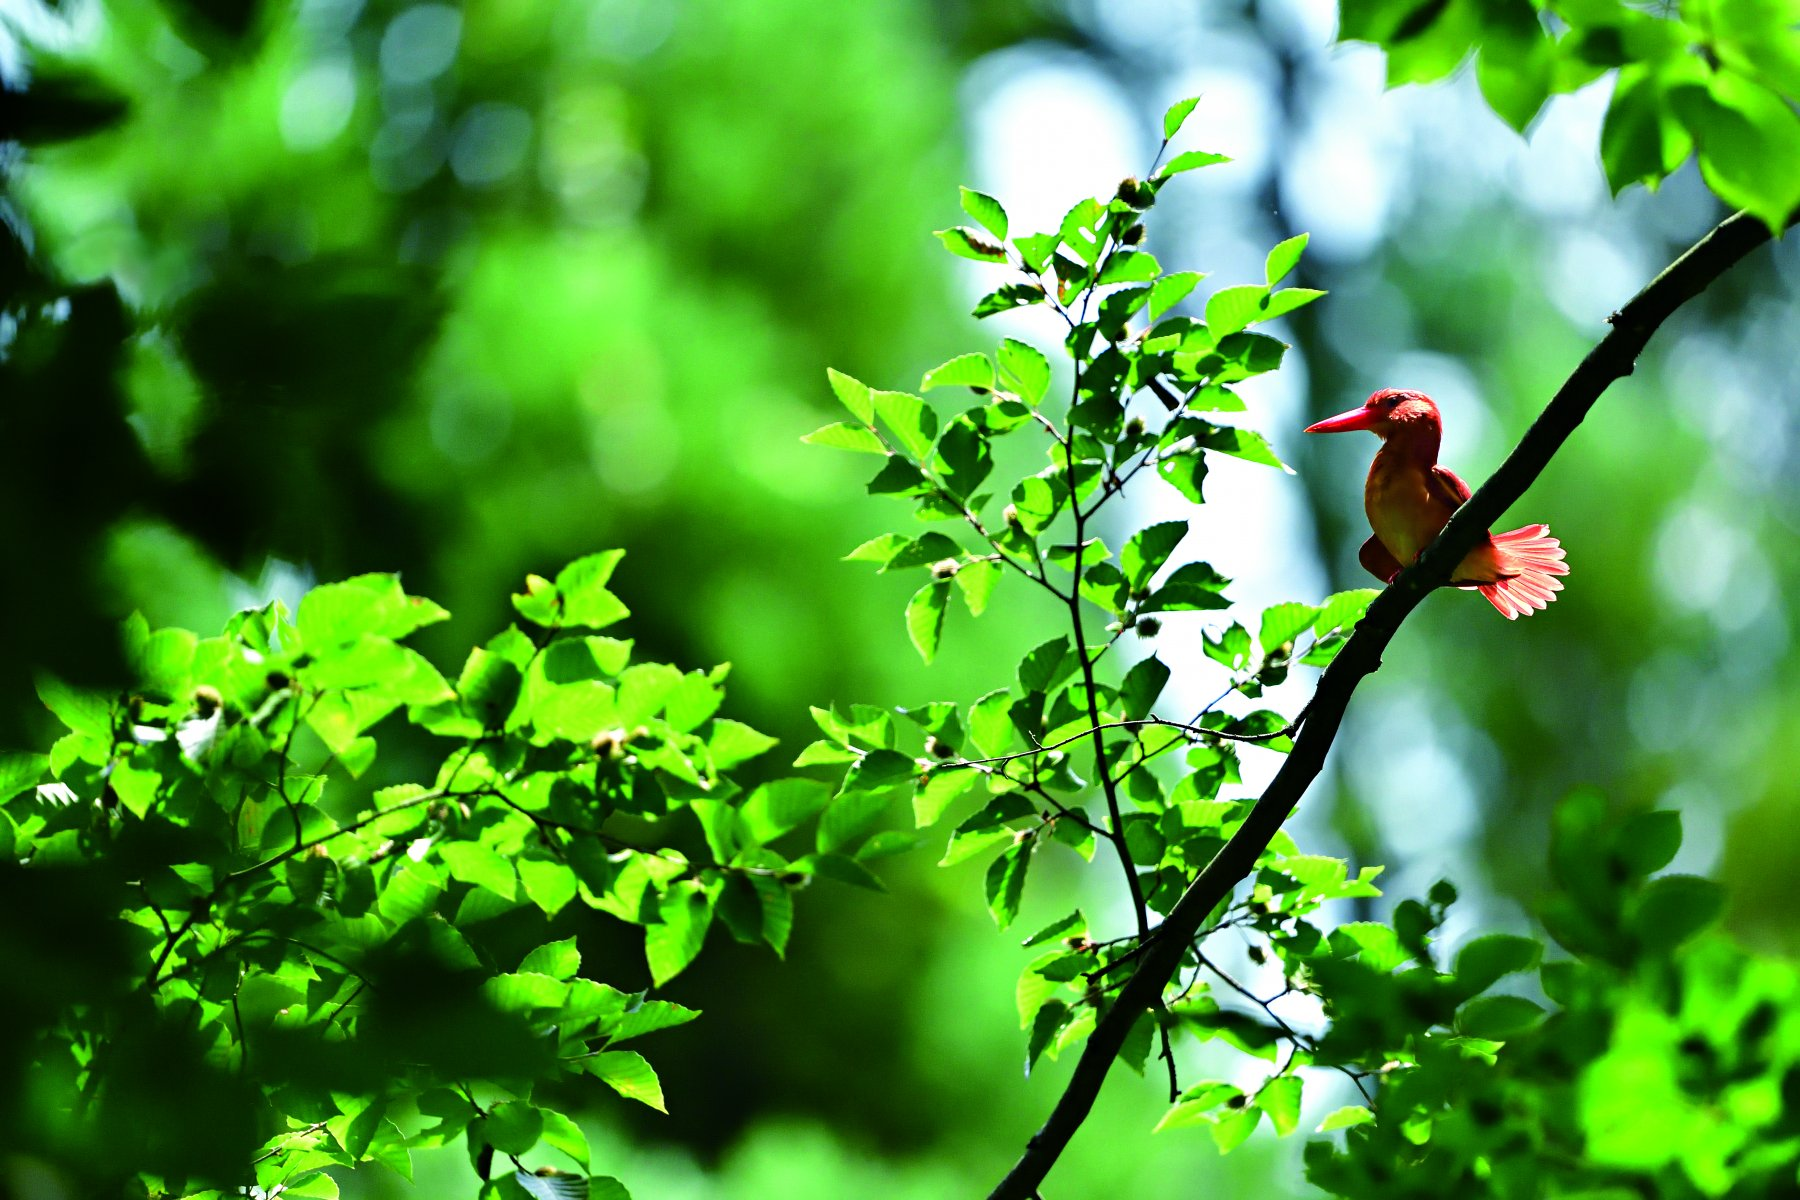 While the Common Kingfisher lives in an open river environment, the Ruddy Kingfisher prefers rivers surrounded by forests © HIH Princess Takamado